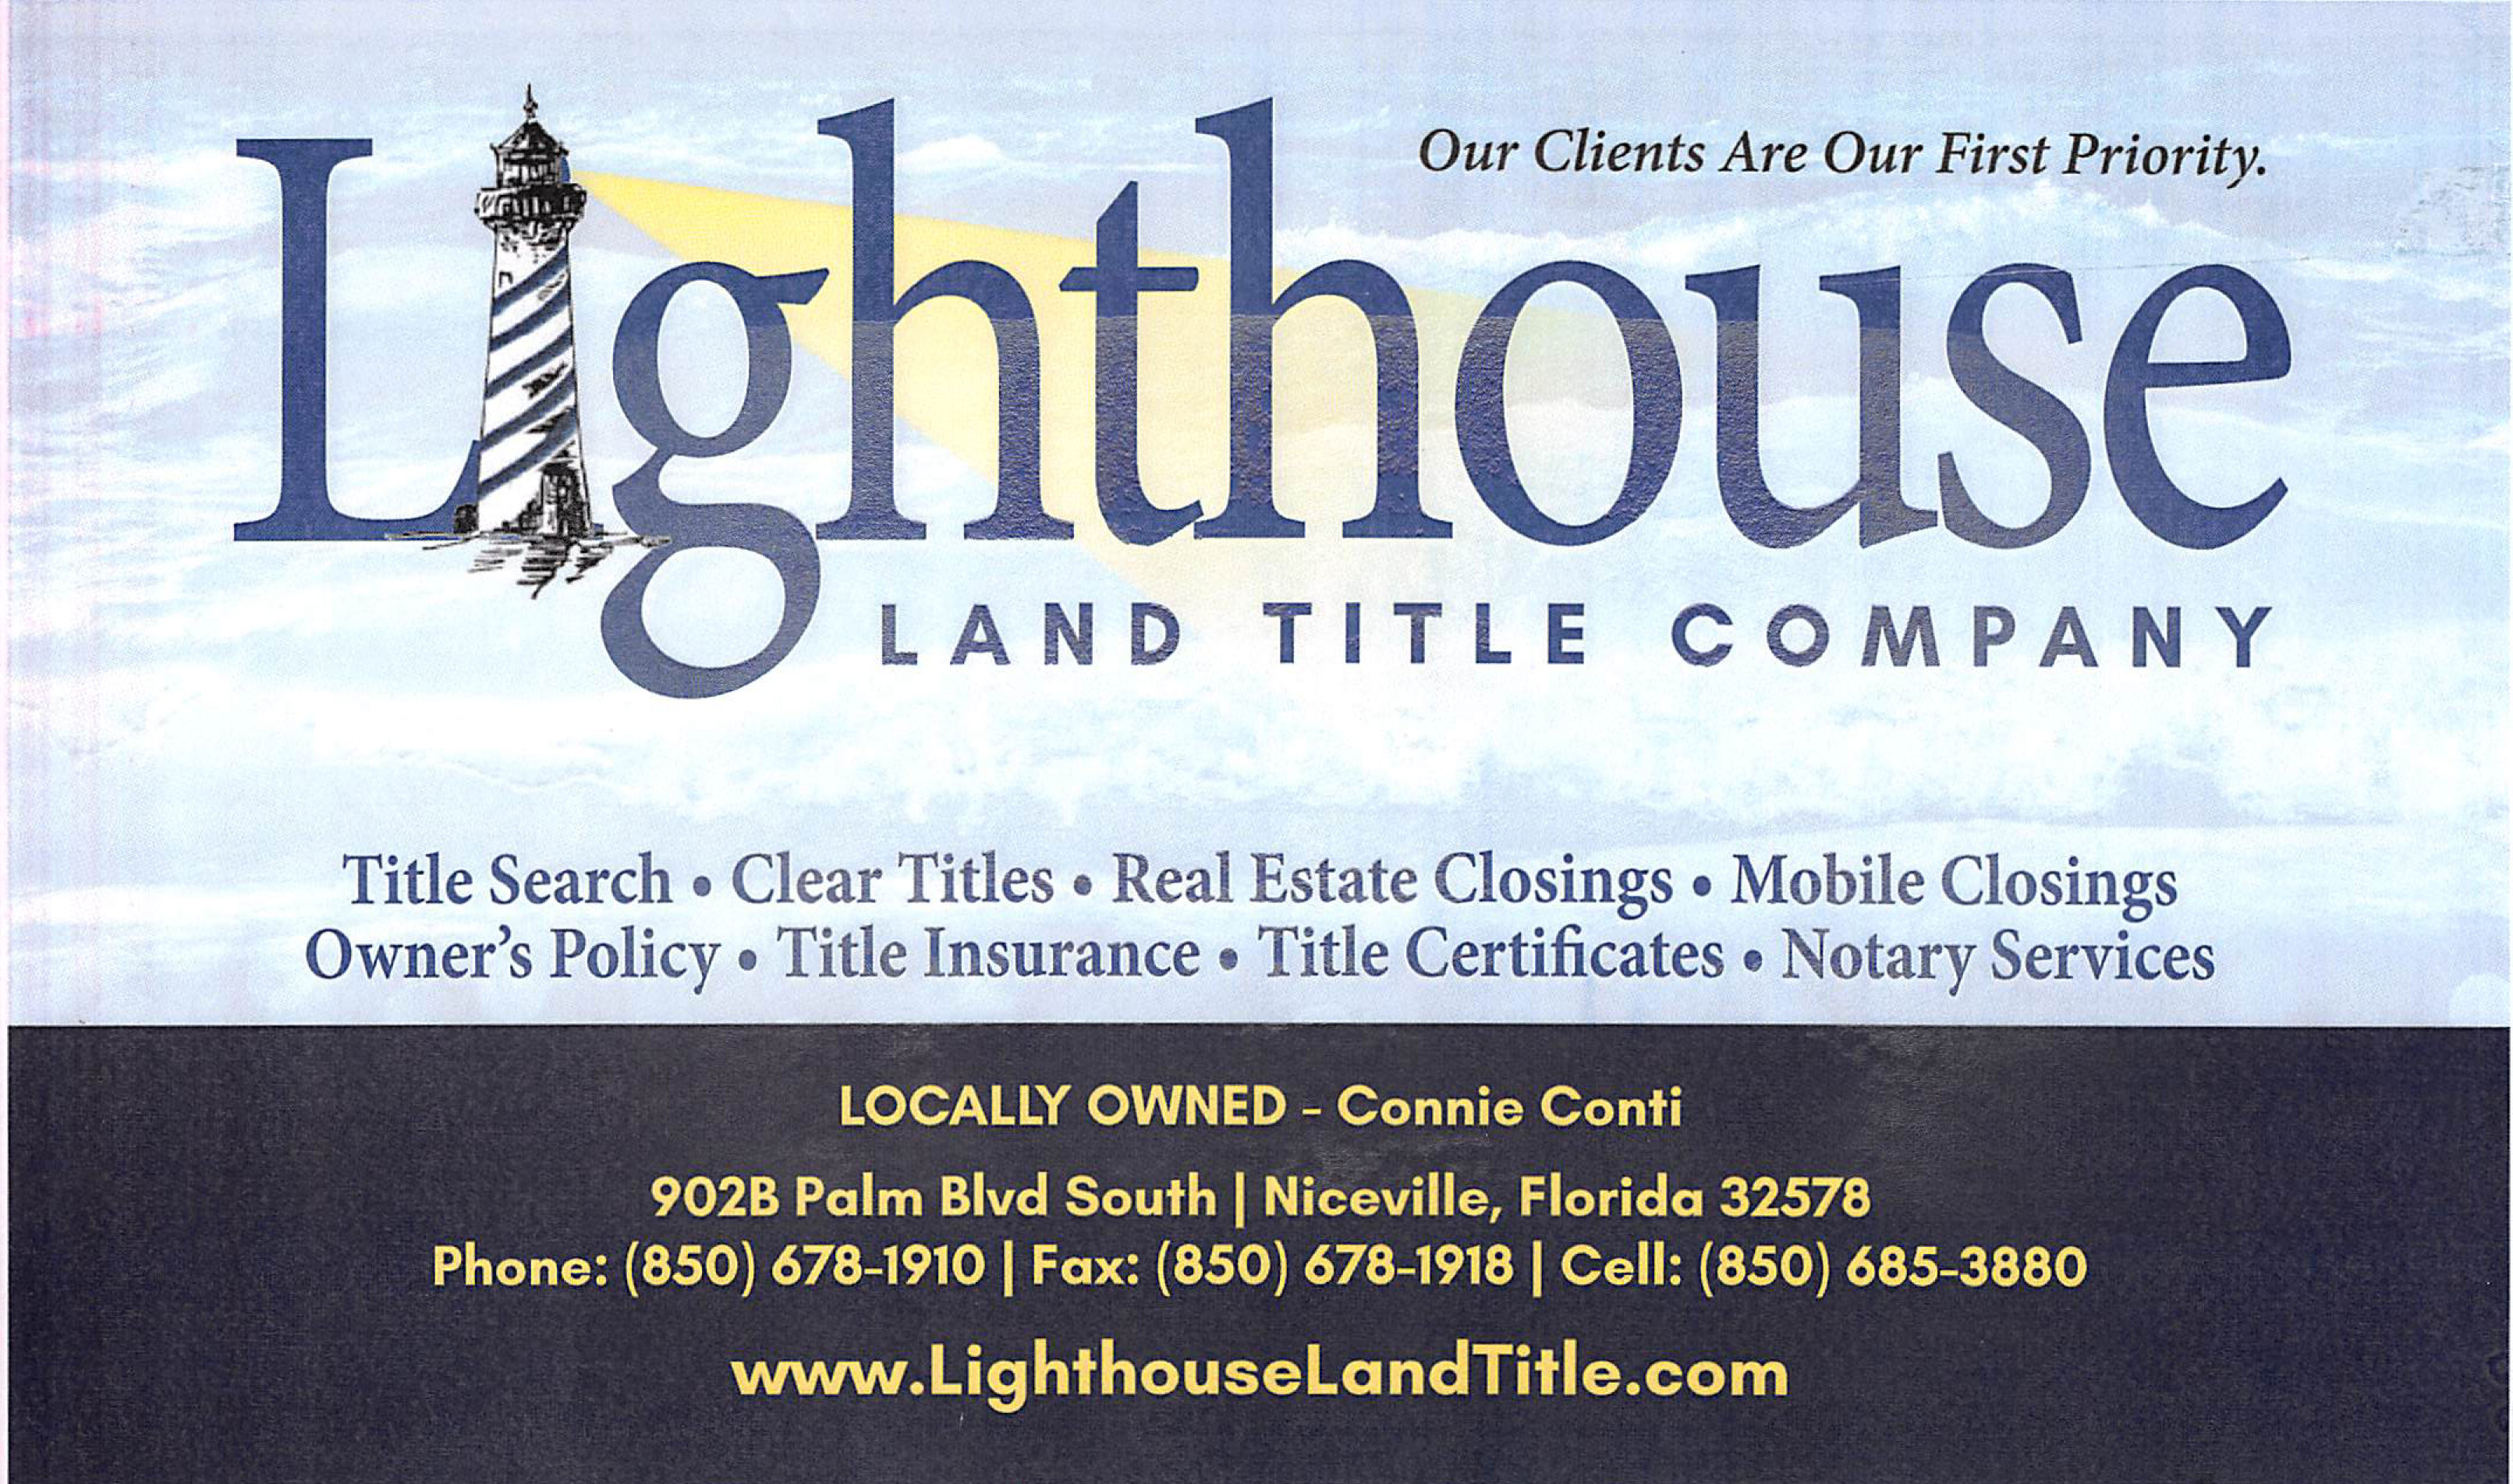 Lighthouse Land Title Company